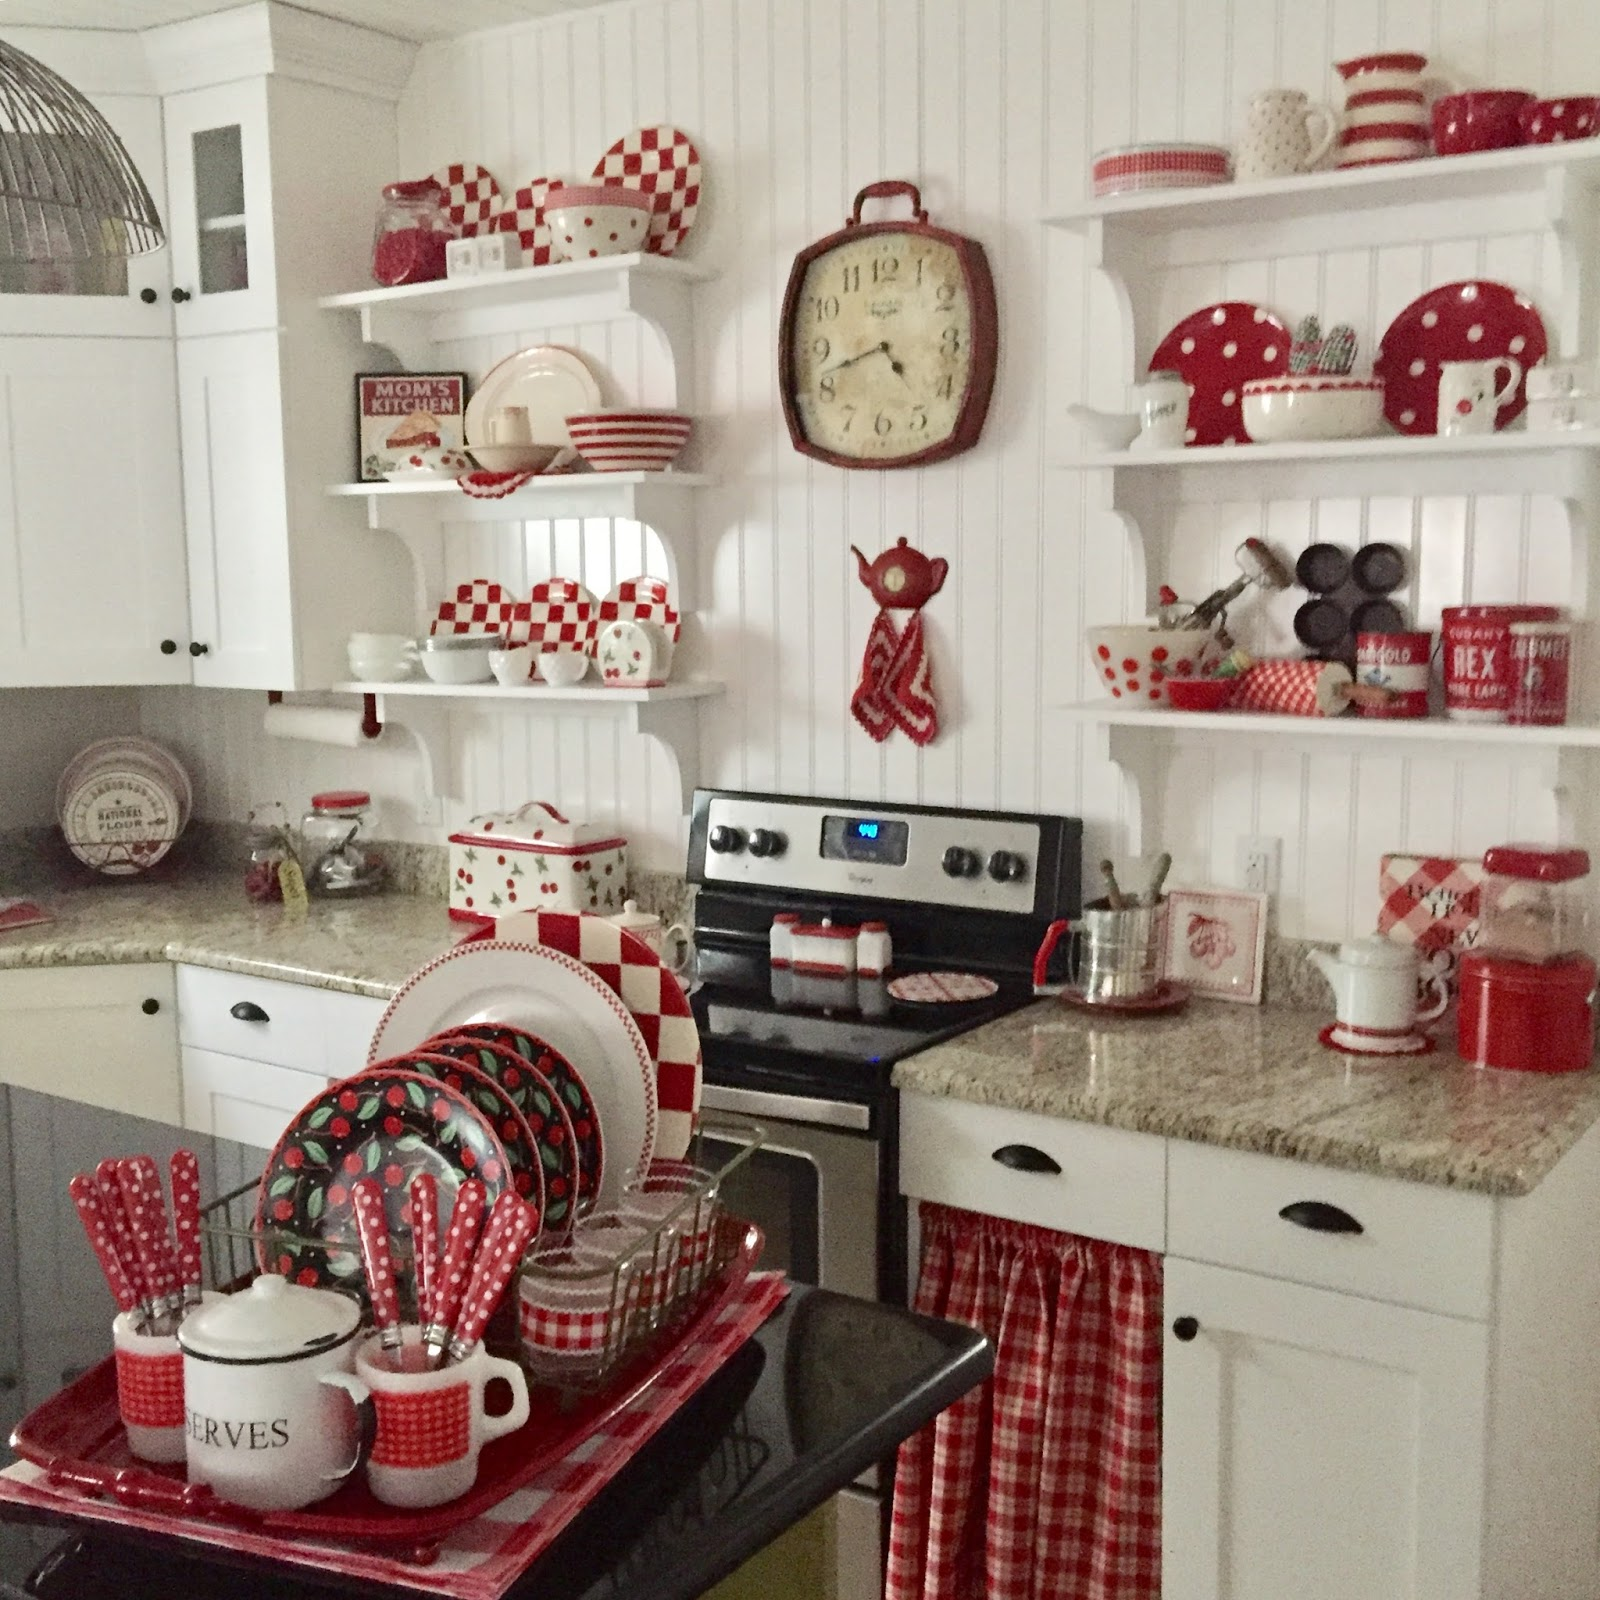 exciting red kitchen decor | My Valentine Kitchen. . . - Have a Daily Cup of Mrs. Olson